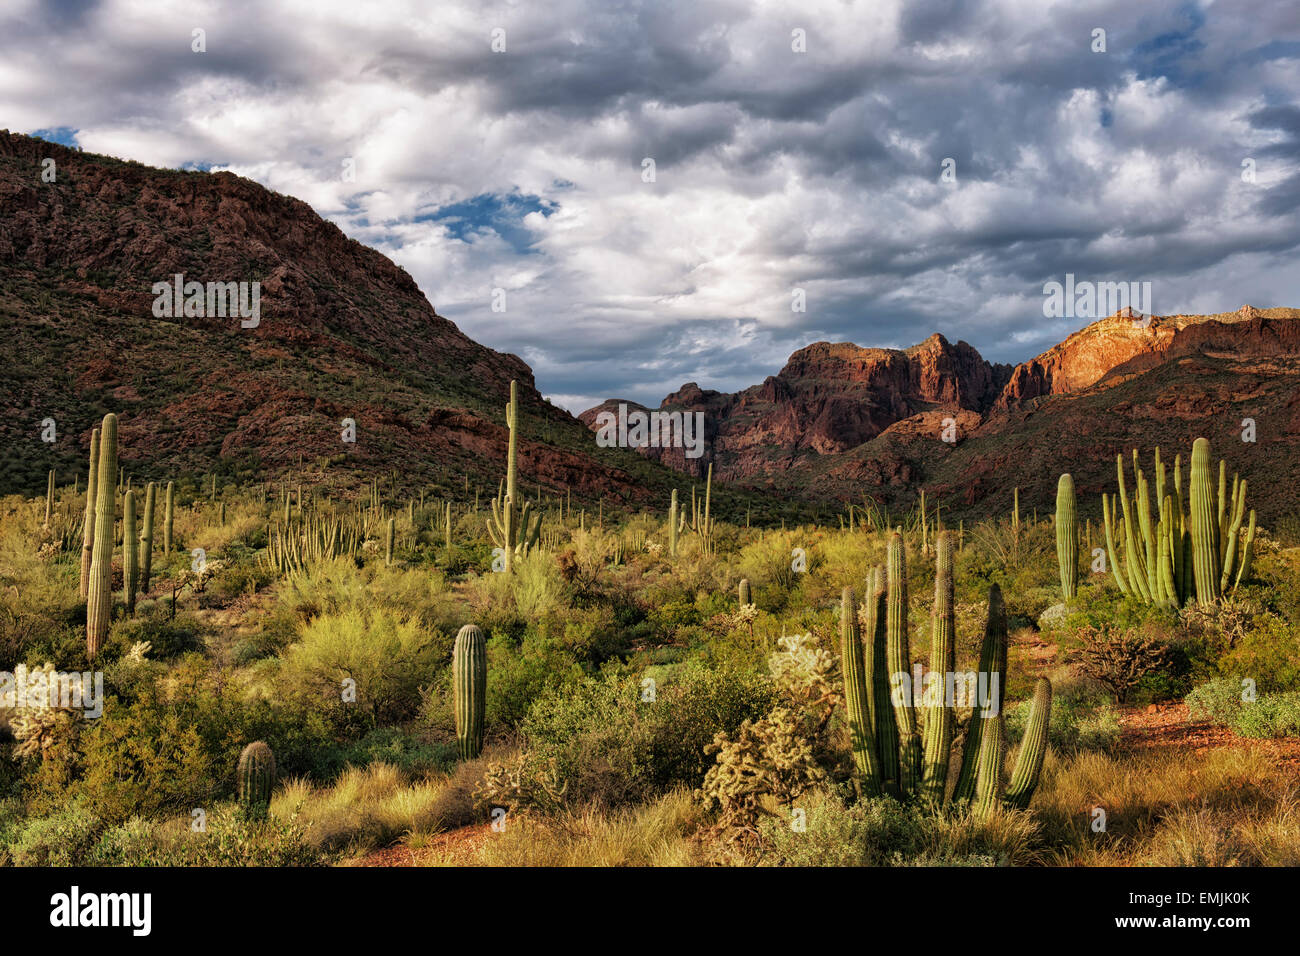 Last light on the Ajo Mountain Range in Arizona's Organ Pipe Cactus National Monument and the Sonoran Desert. - Stock Image